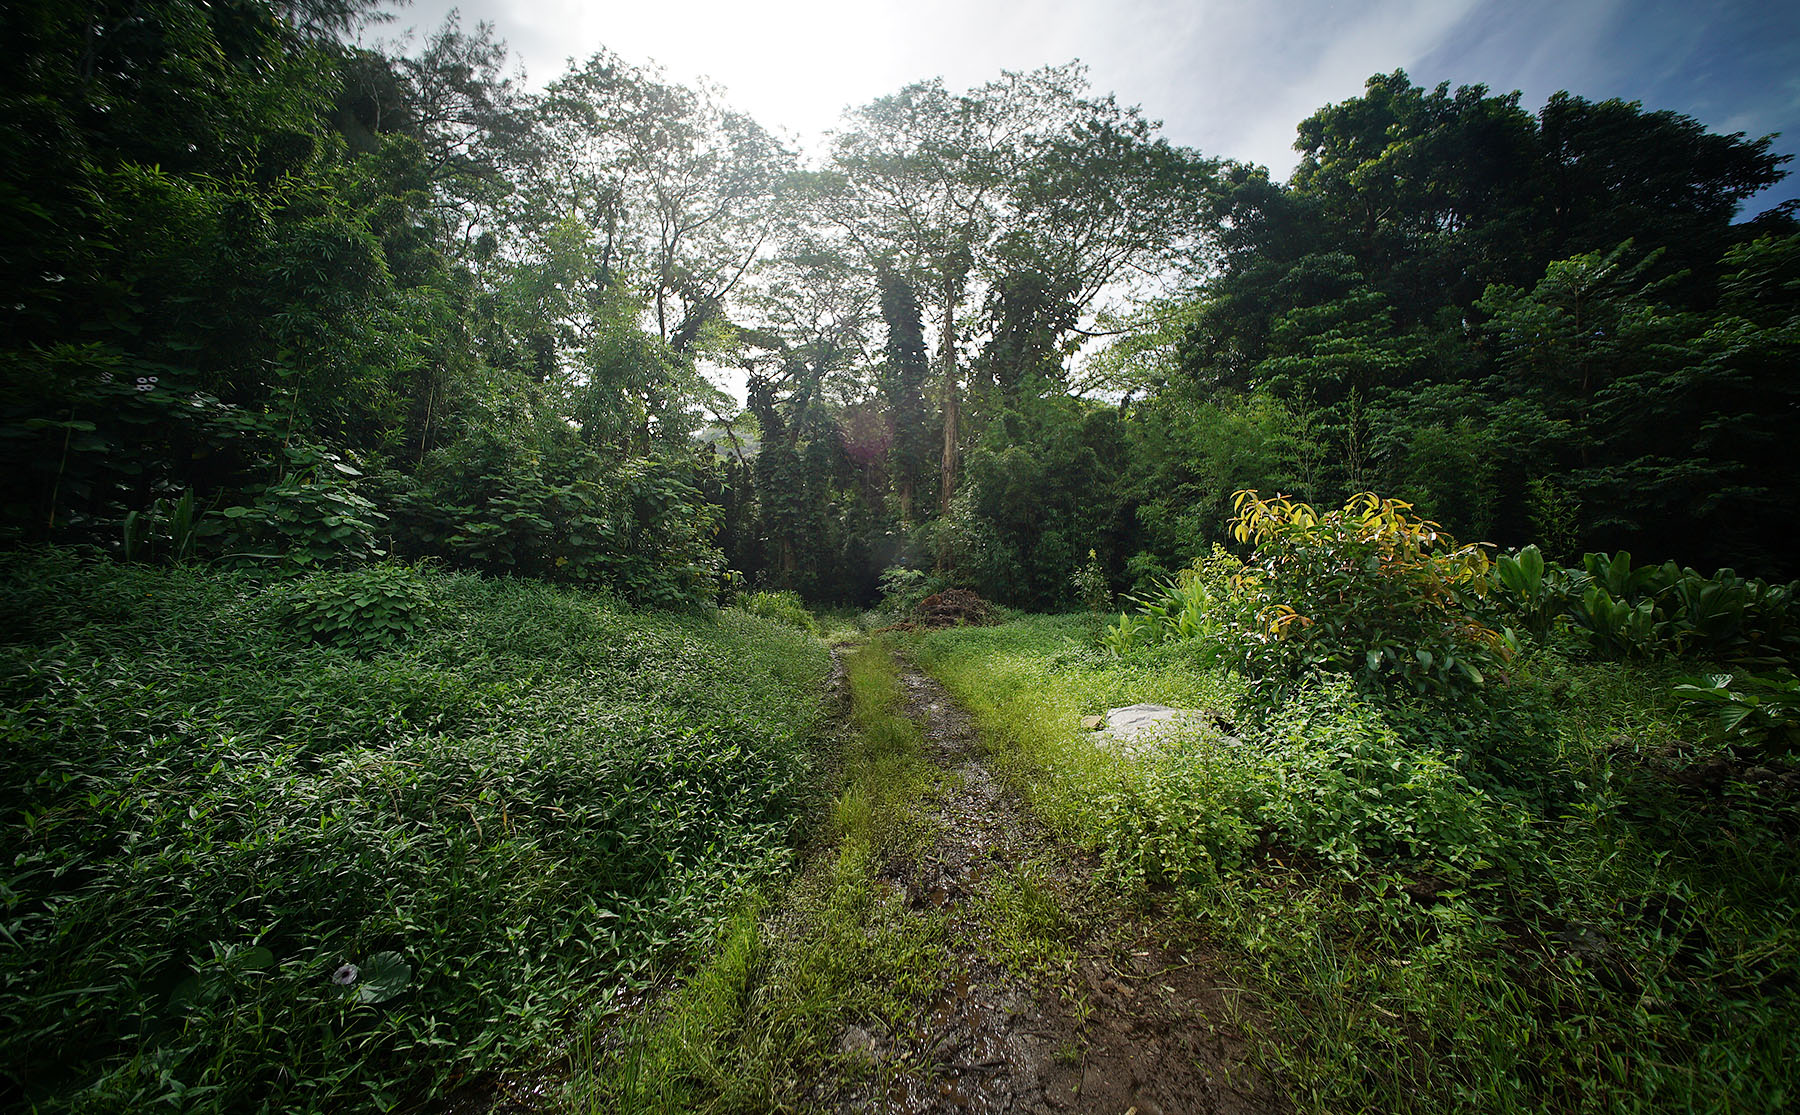 <p>Members of President Obama's Advisory Commission on Asian Americans and Pacific Islanders visited the Ho'oulu 'Aina Nature Park in Kalihi Valley on Wednesday. The park sits on more than 100 acres of land that was spared from development.</p>